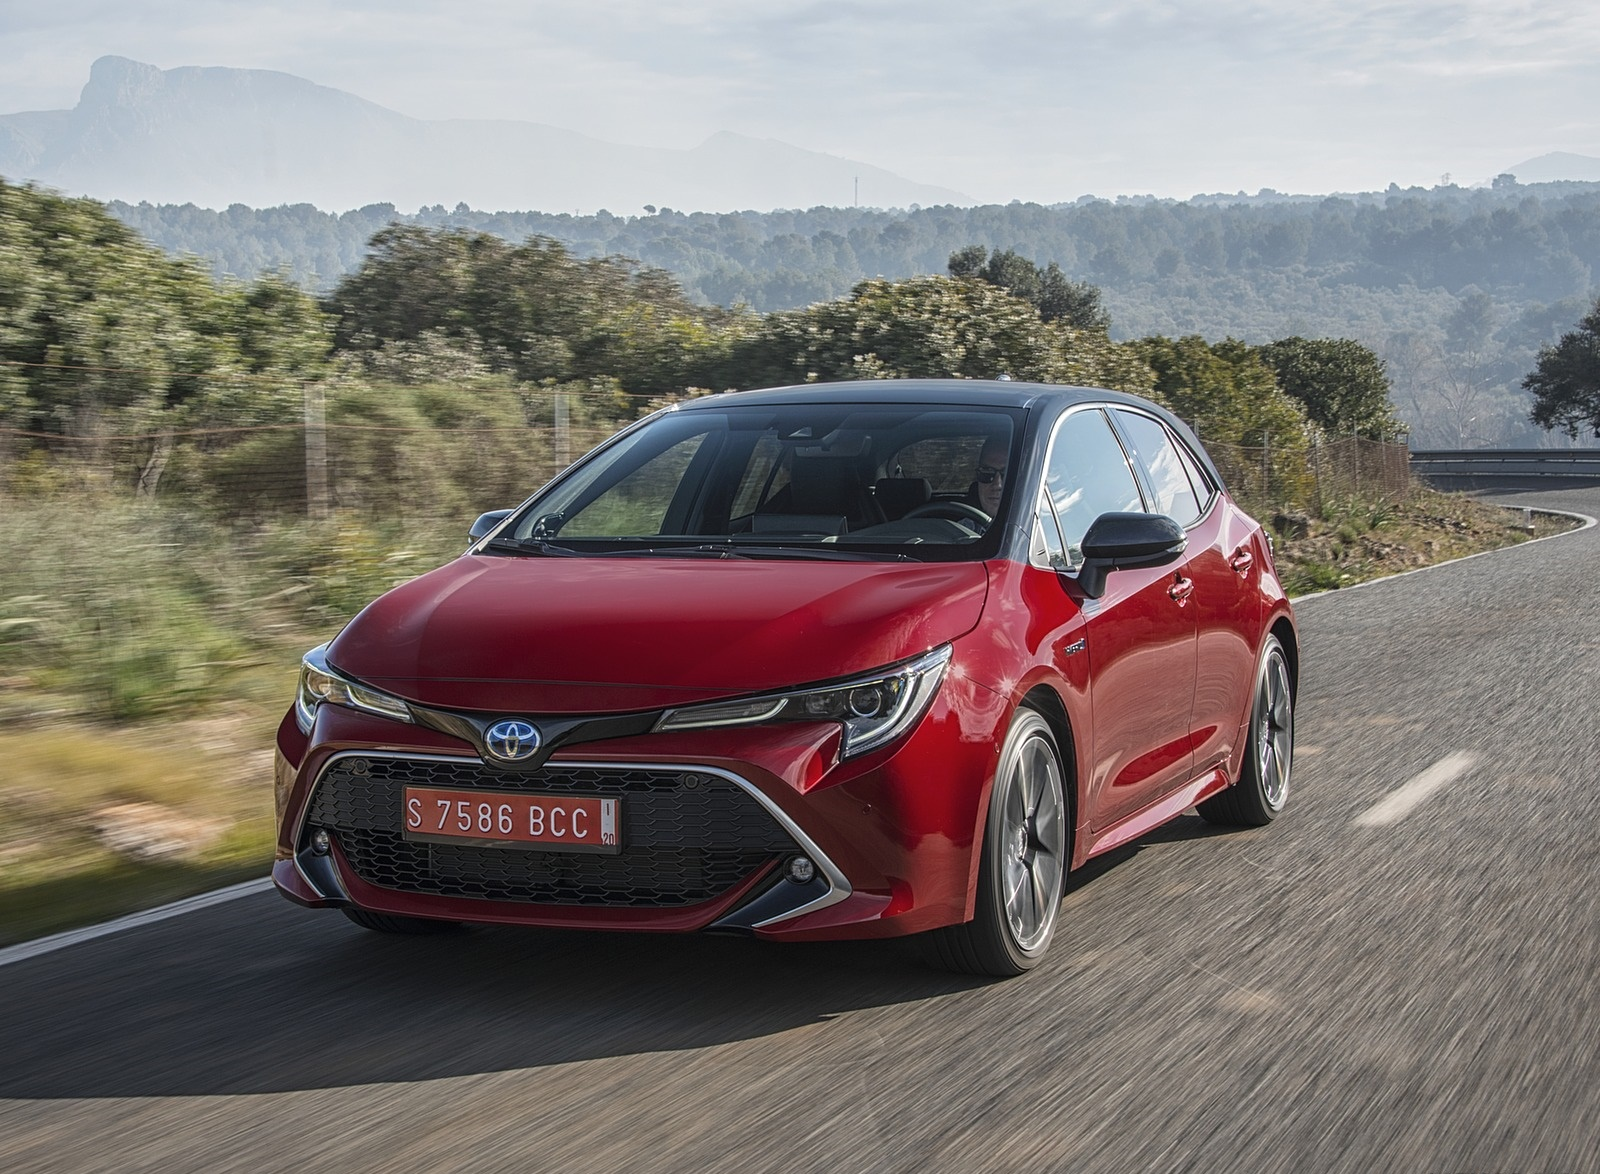 2019 Toyota Corolla Hatchback Hybrid 2.0L Red bitone (EU-Spec) Front Three-Quarter Wallpapers (2)